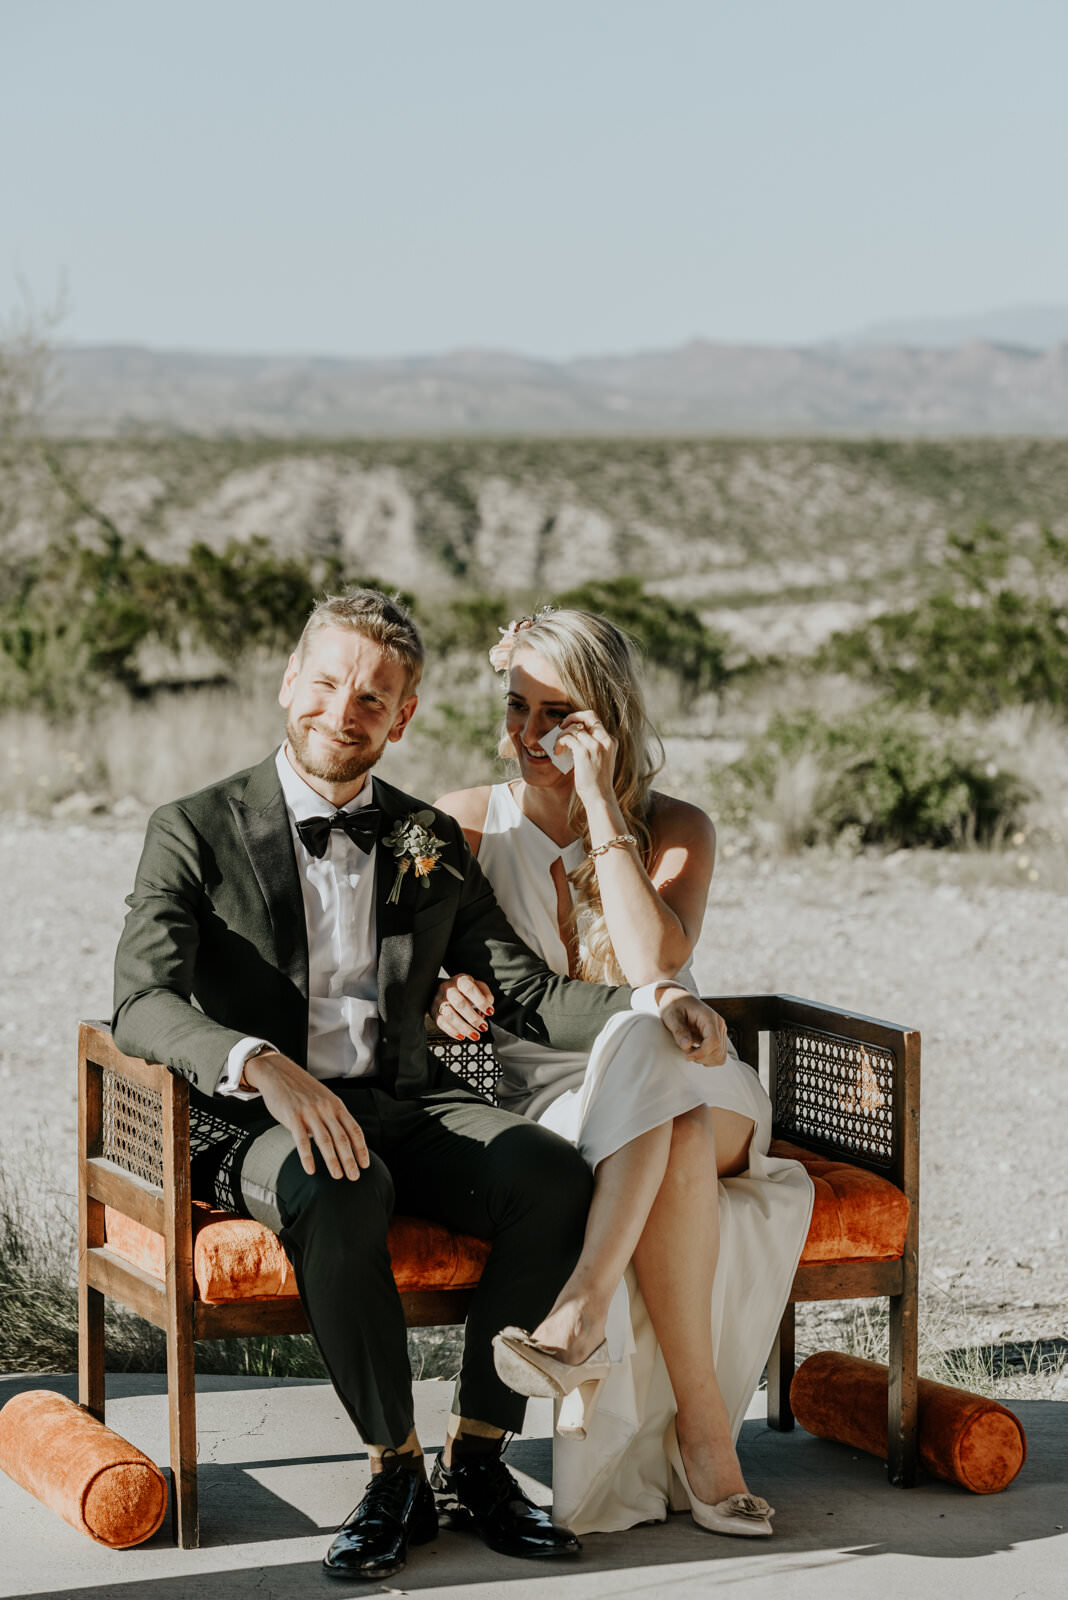 A wedding couple is sitting on a chair.